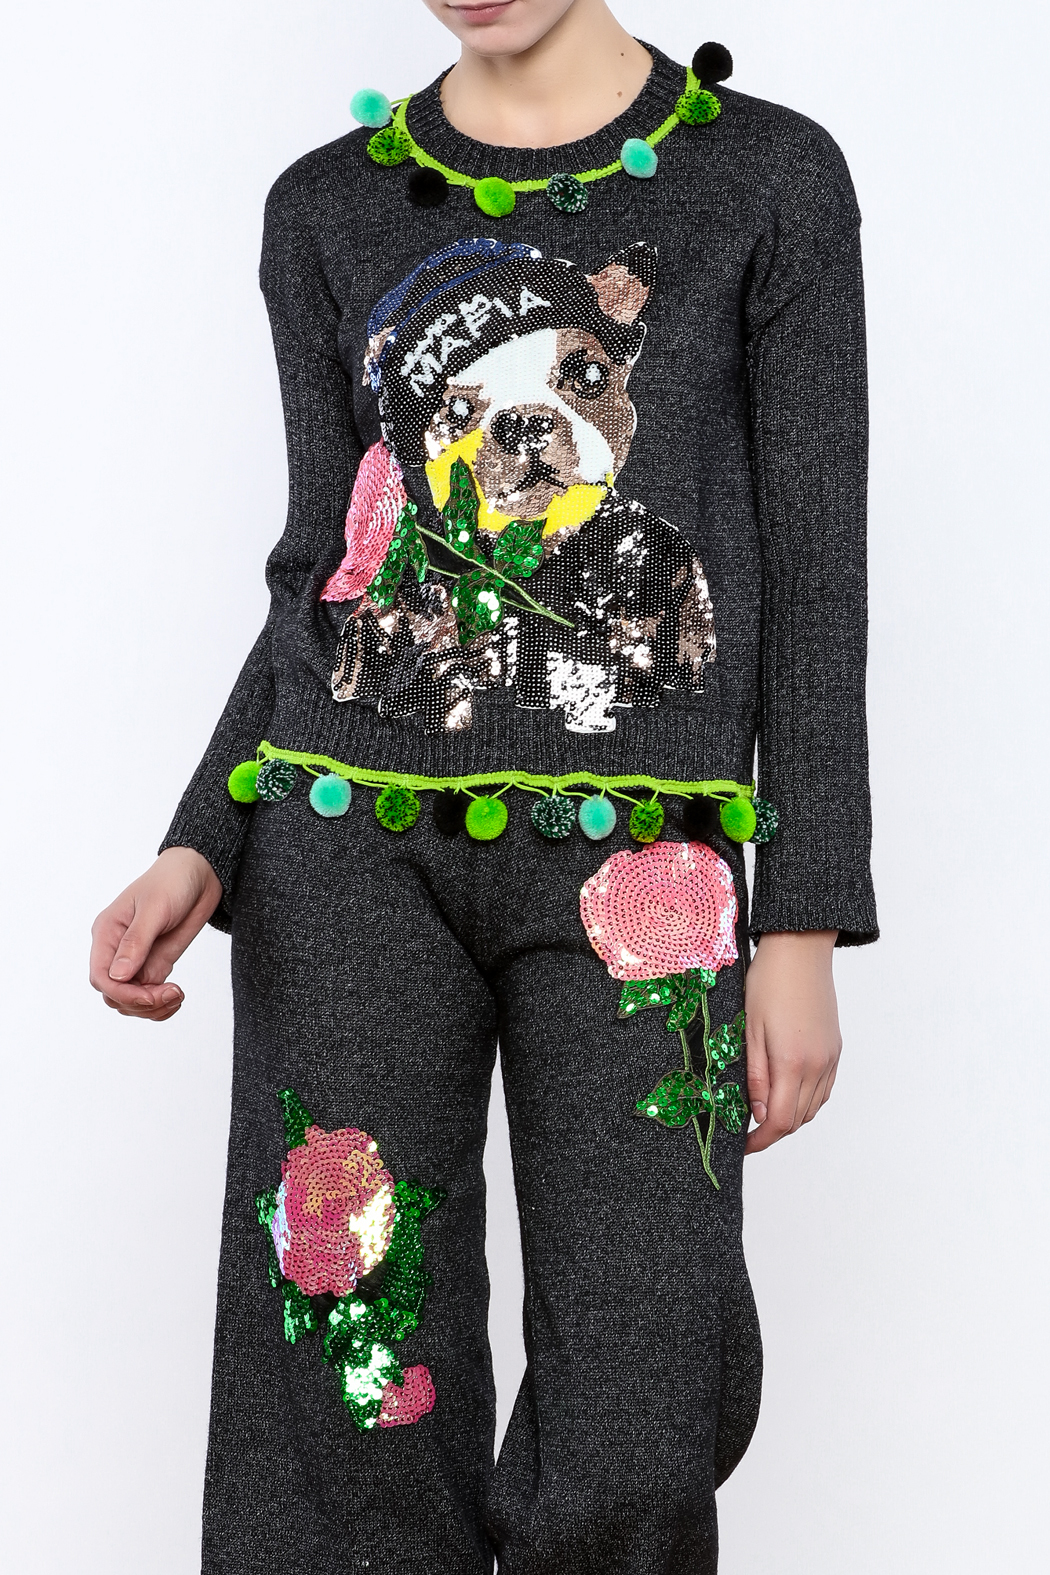 THINK CLOSET Sequined Pup Sweater - Main Image